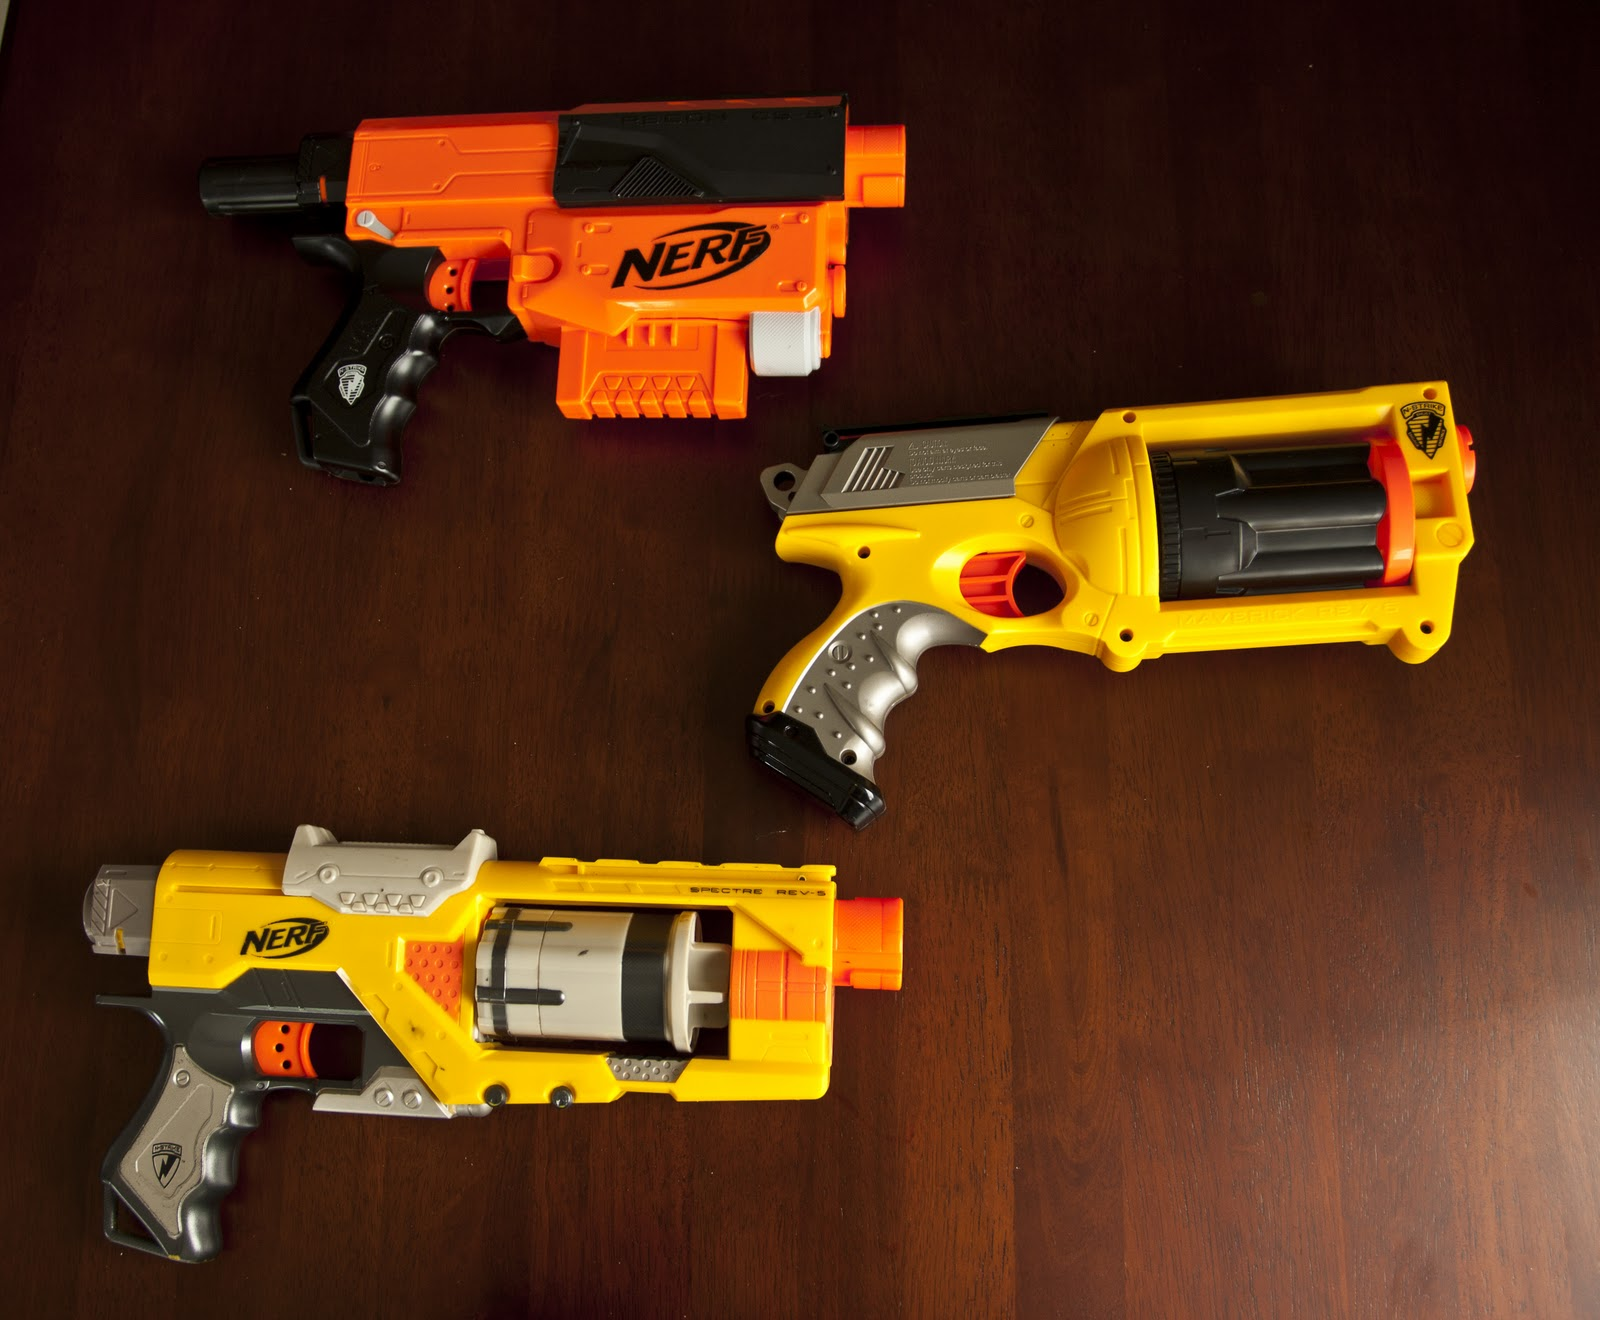 1940 - Wikipedia Pictures of all the nerf guns